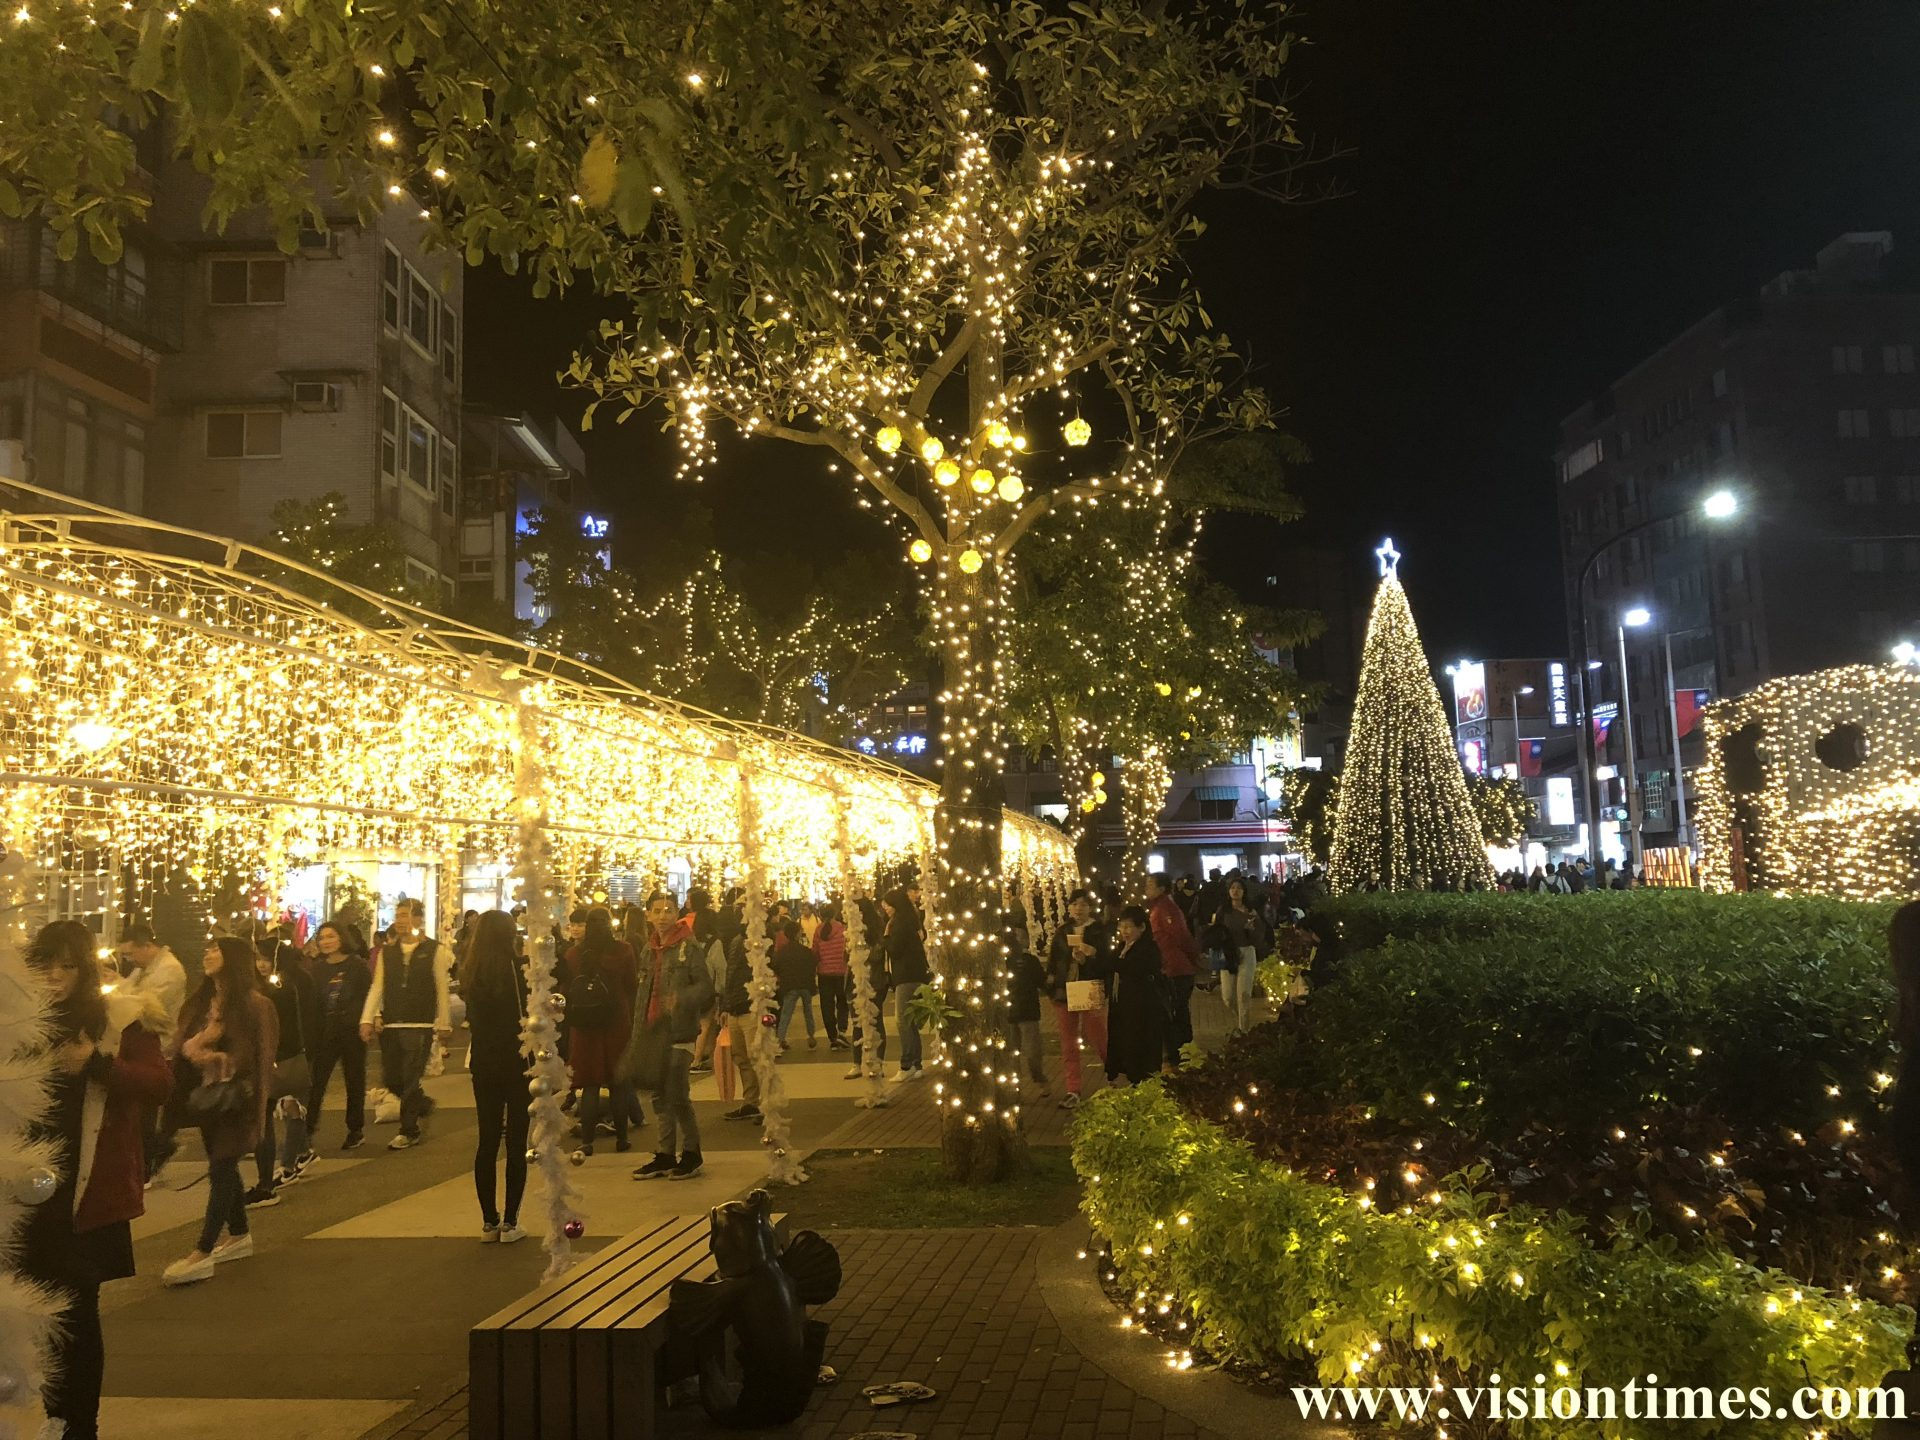 The Old Street in New Taipei City's Tamsui District is filled with Christmas atmosphere at night. (Image: Billy Shyu / Vision Times)